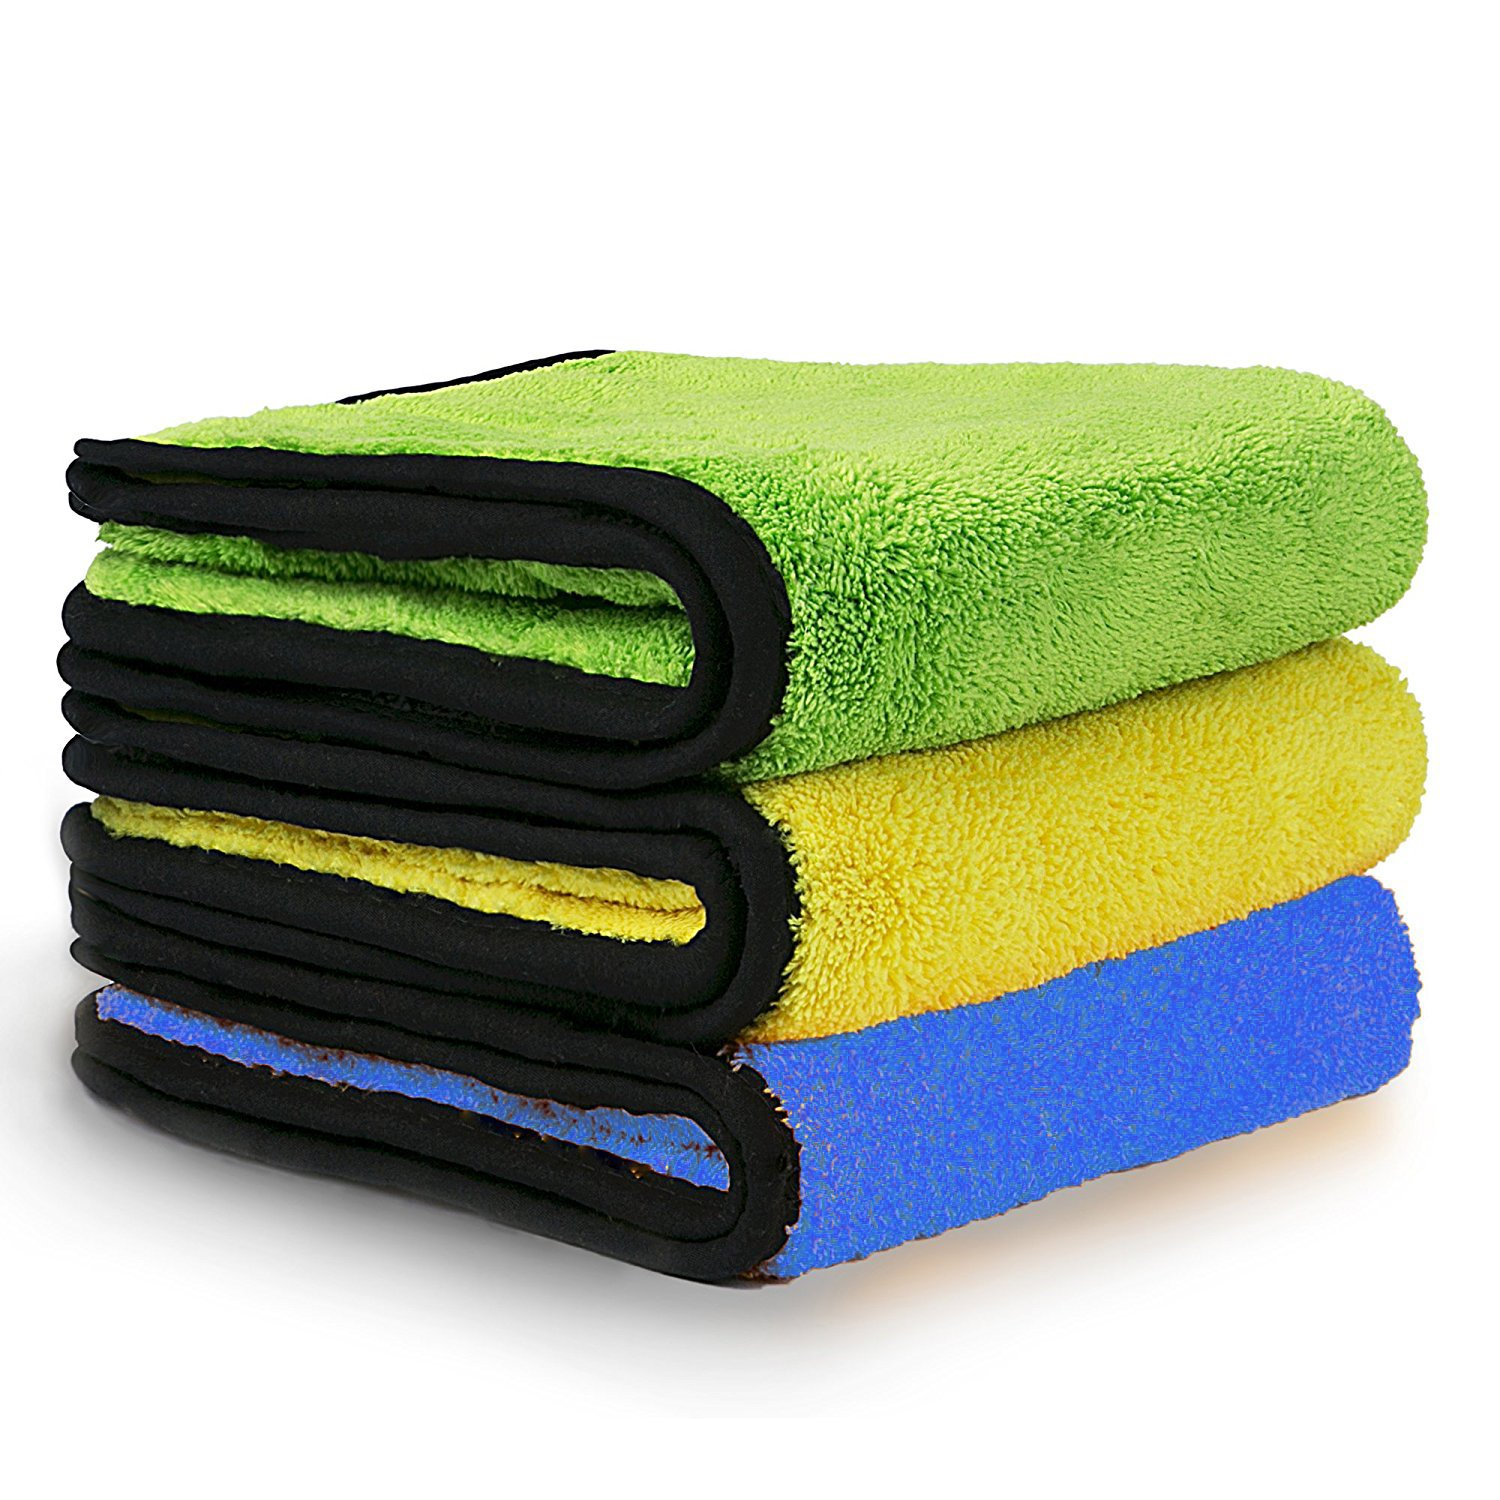 Car Detailing Towels ,Anyyion Dual Layer Ultra-Thick Microfiber Polishing Waxing Drying Cleaning Towel Cloth Car Polishing and Drying Cloth Auto Detailing Towels (3-Pack ; 11.8 x 15.7 inch ,840gsm)